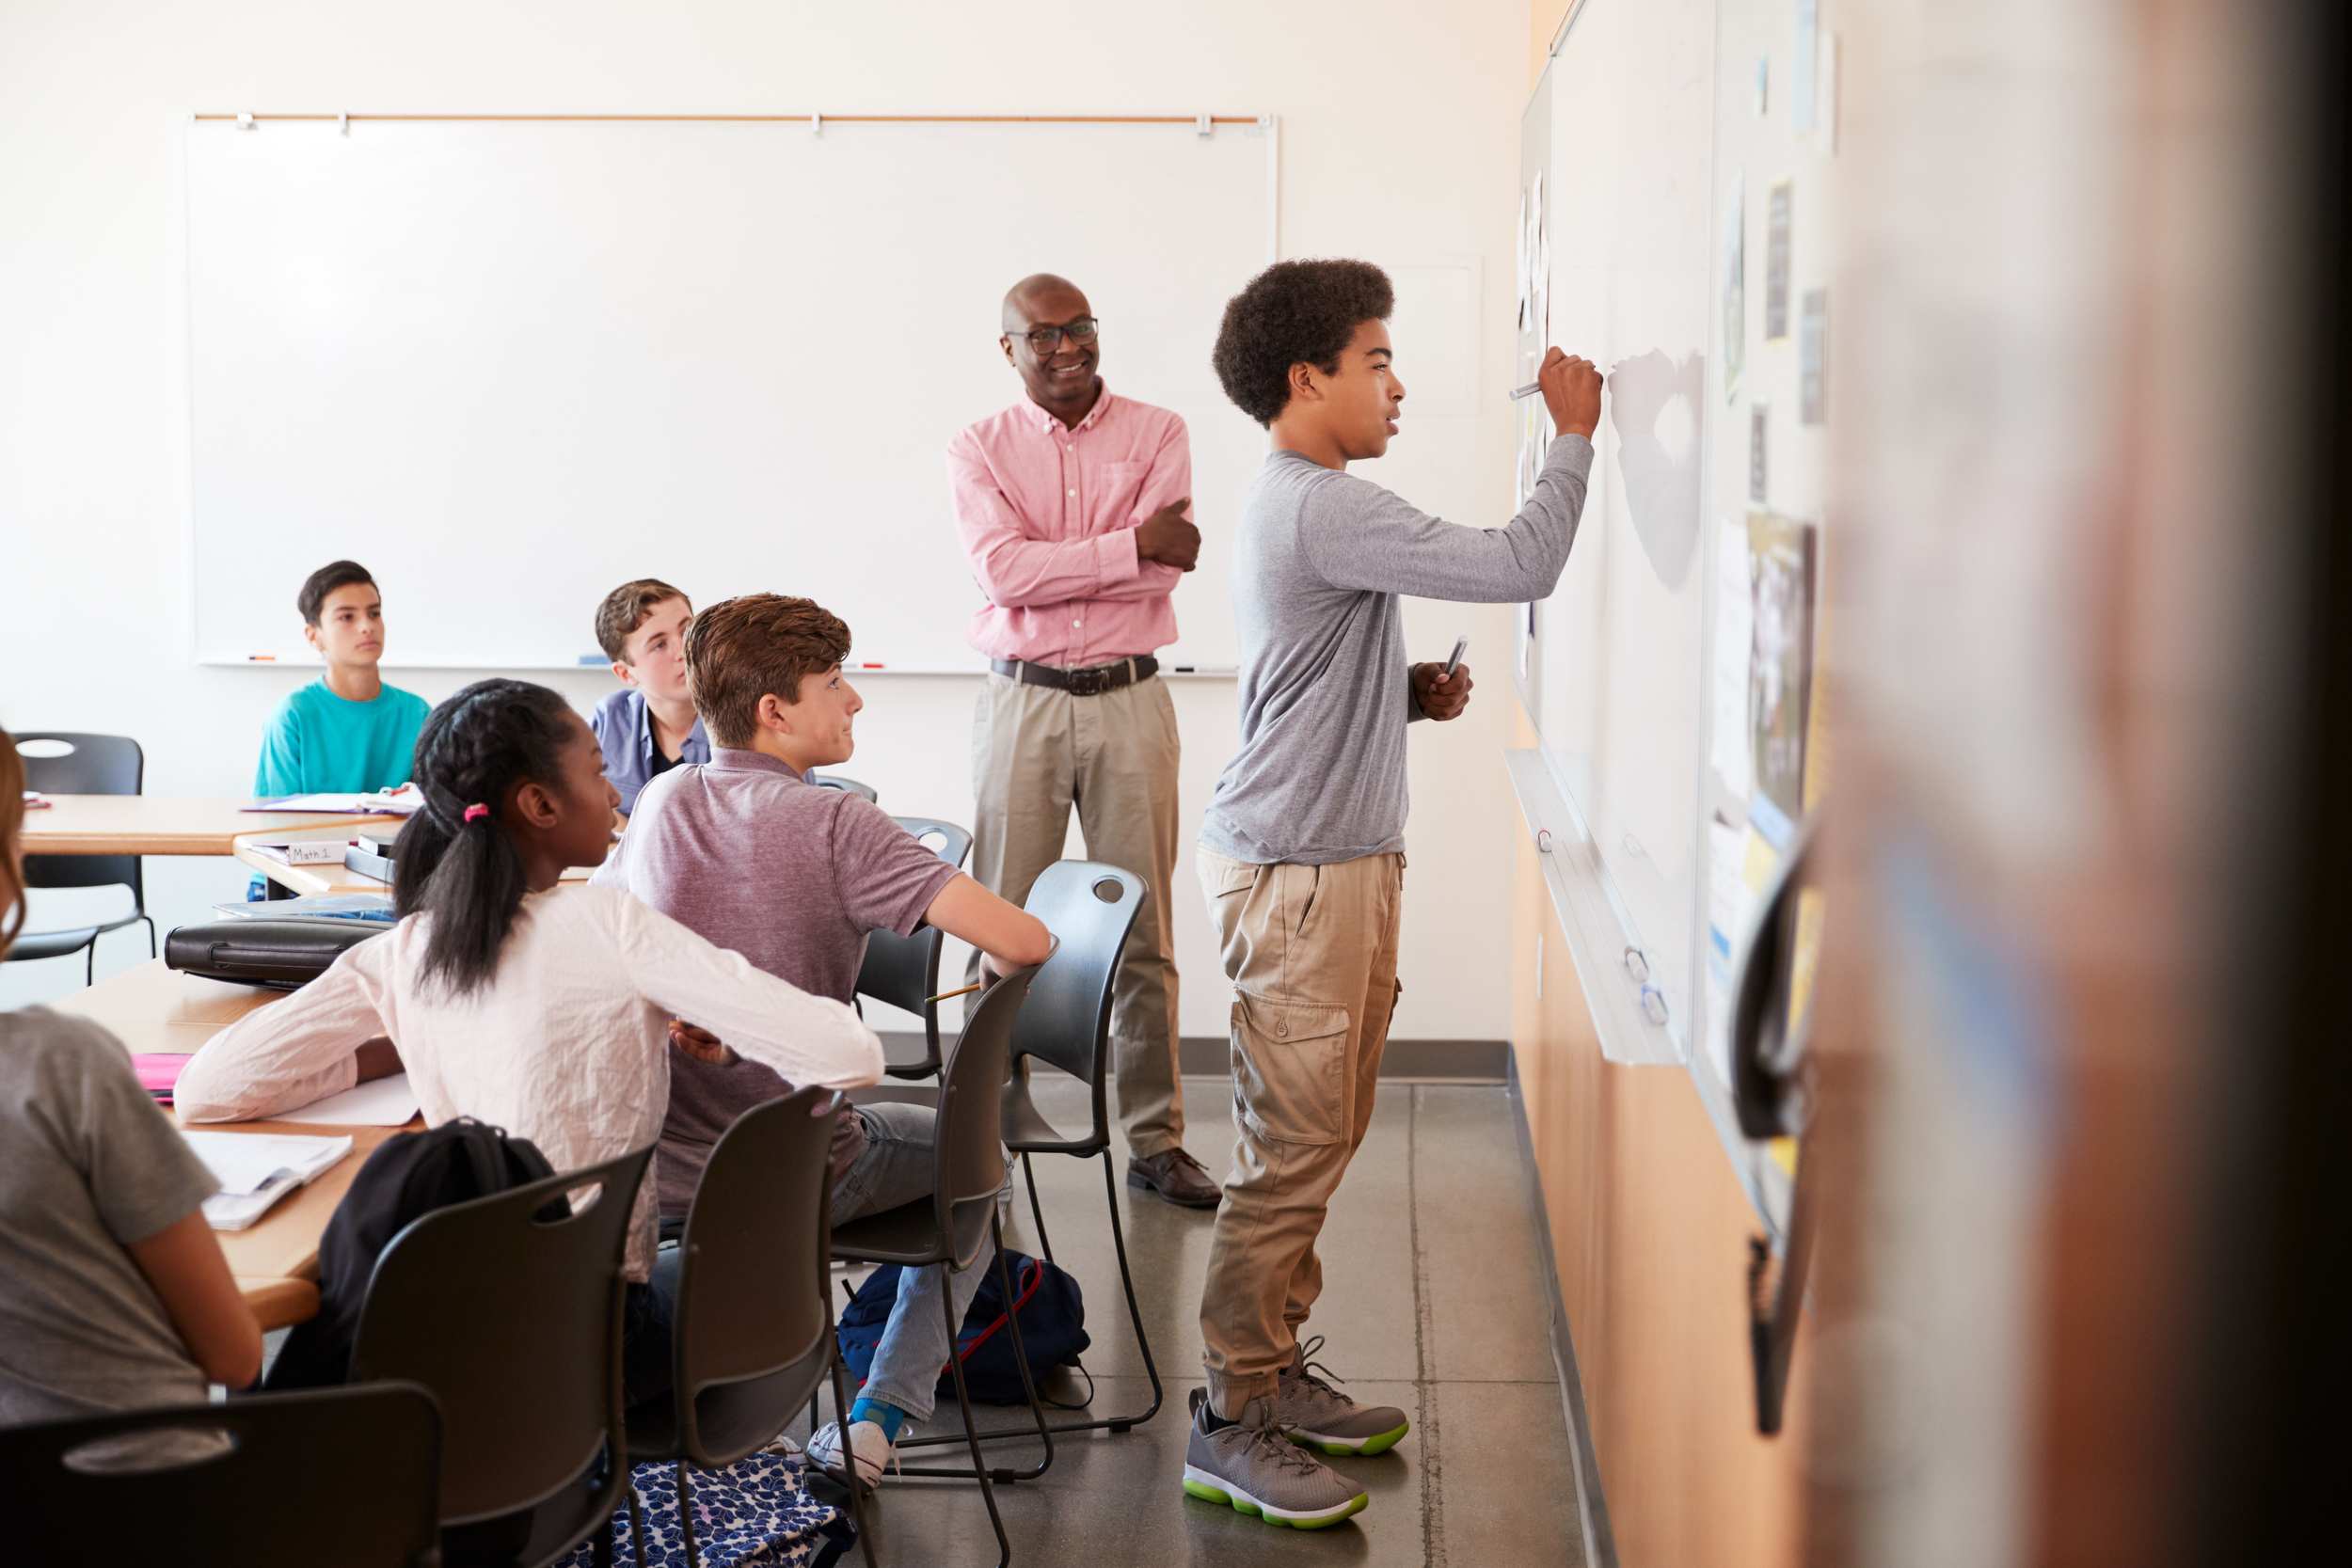 student at whiteboard in classroom